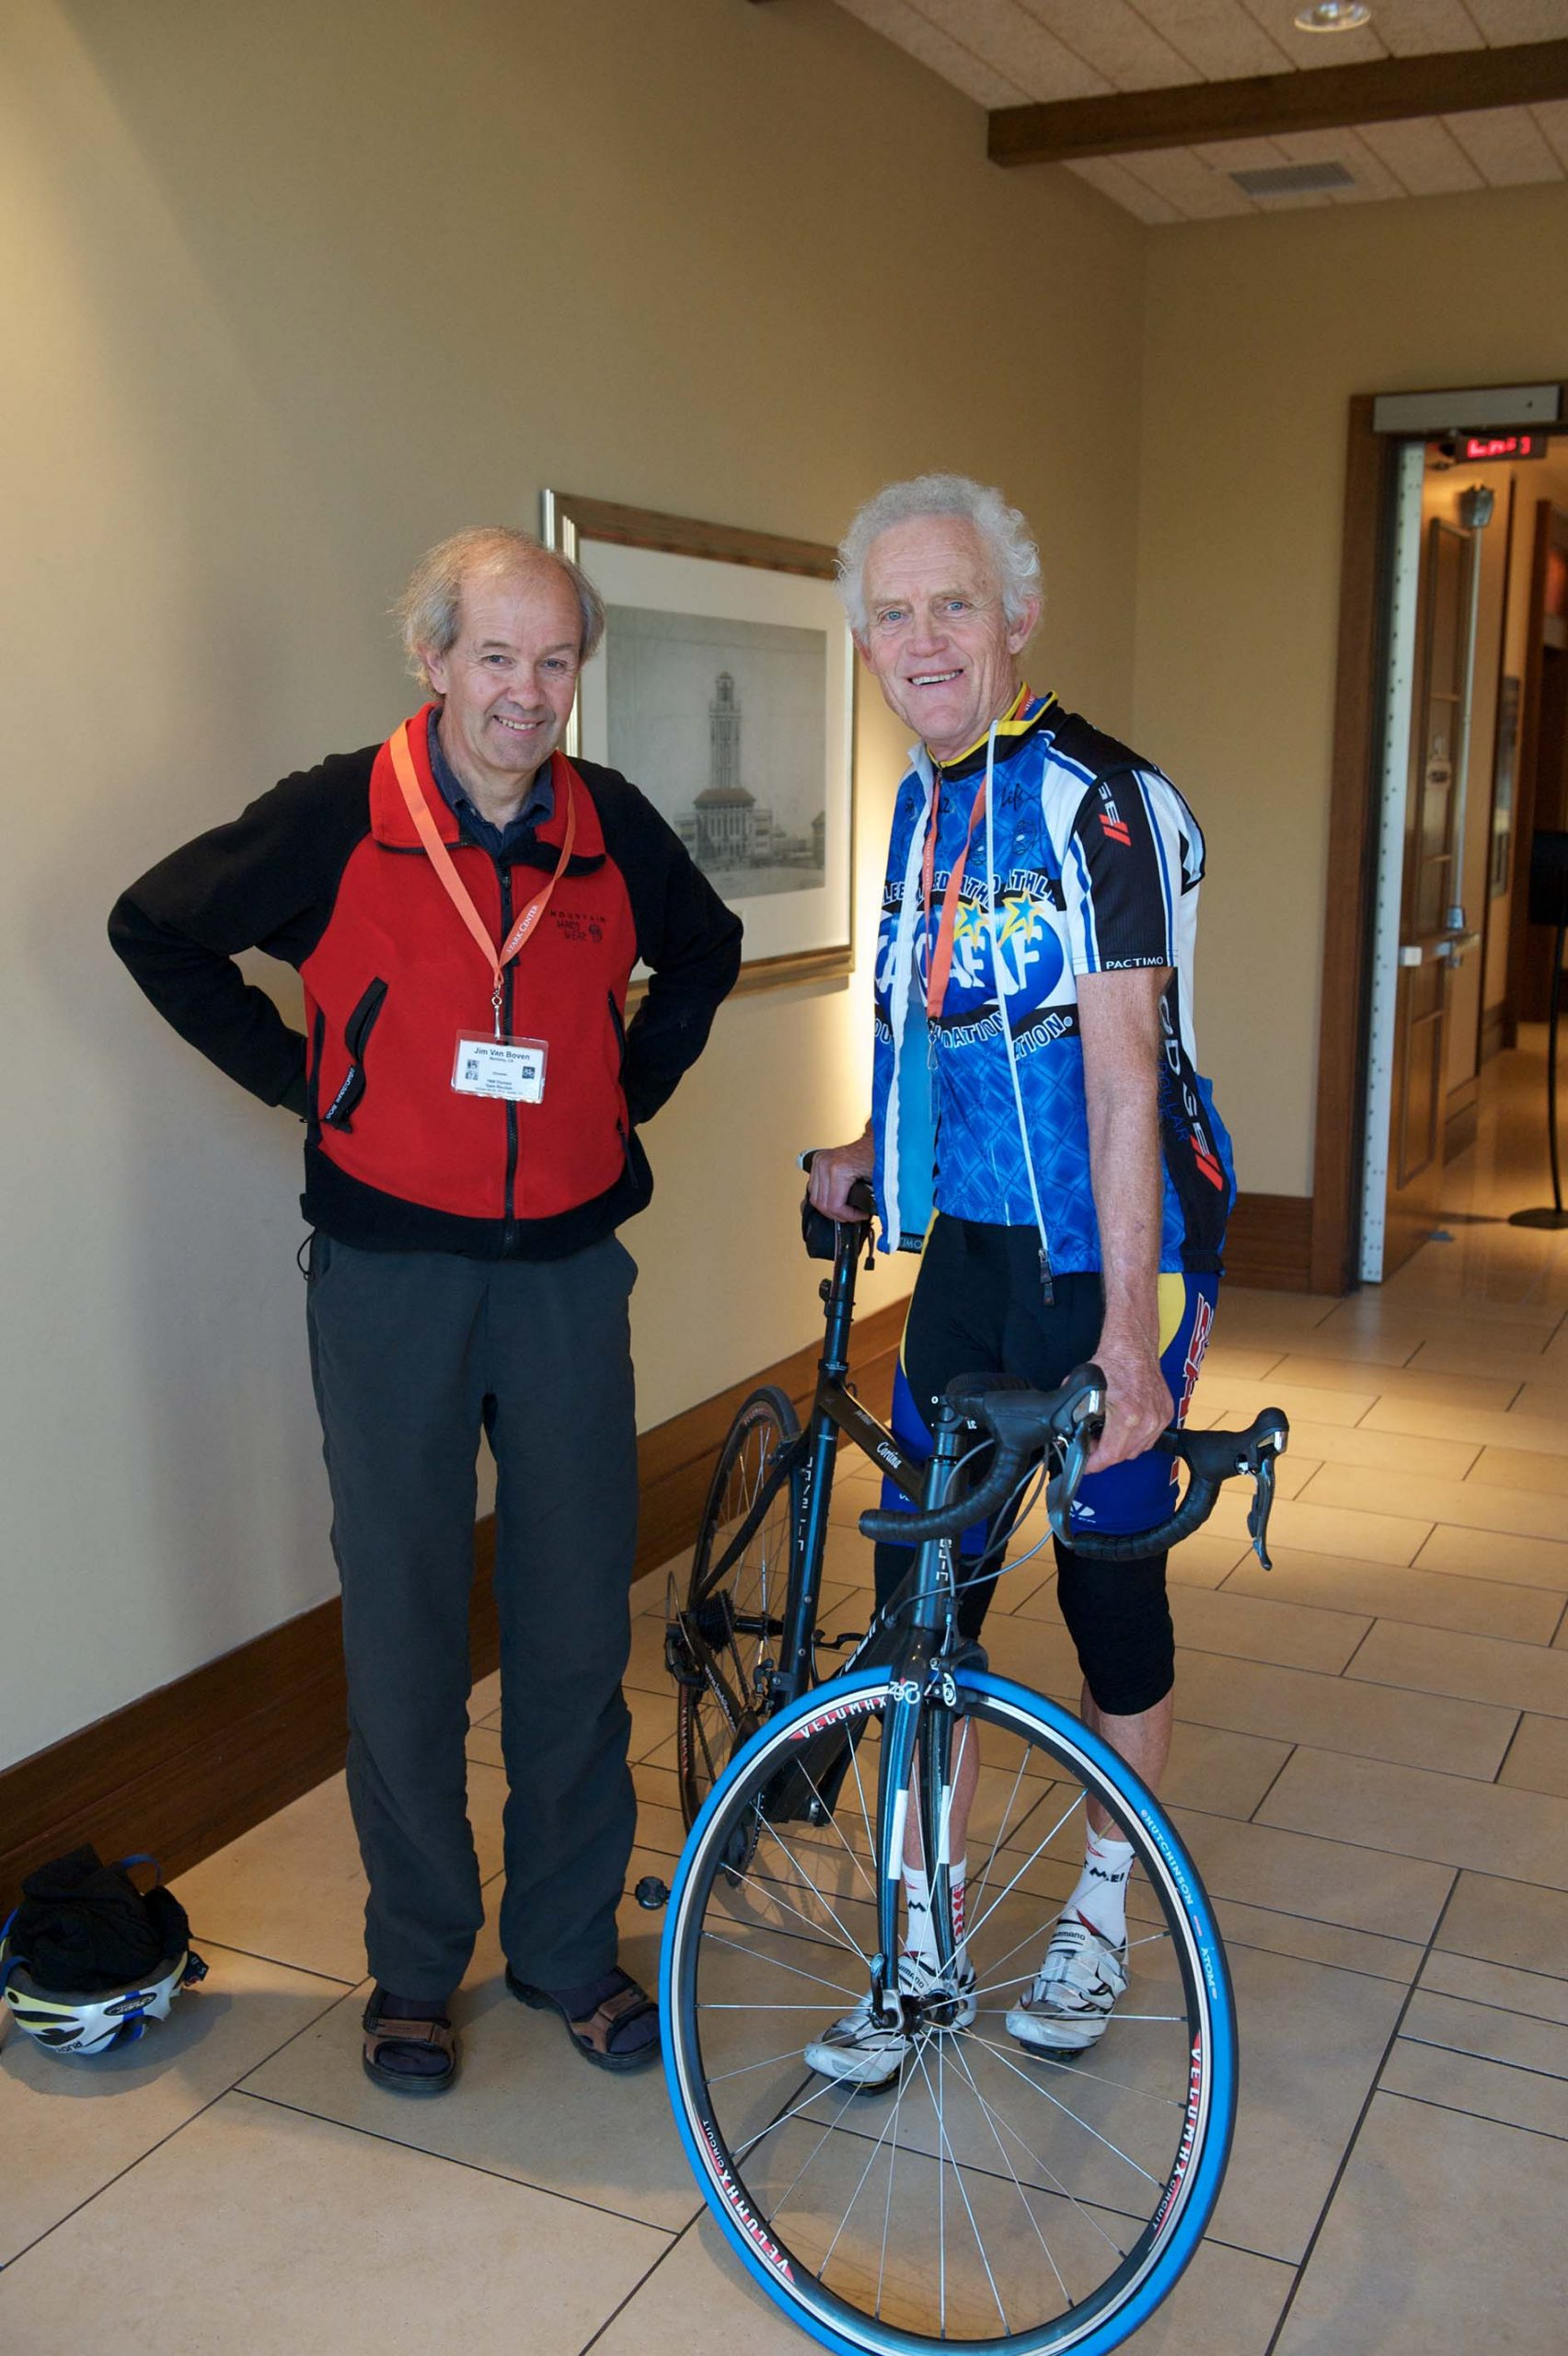 Photograph of two people, including one on a bike, at the 1968 U.S. Olympic Team 2012 Reunion.